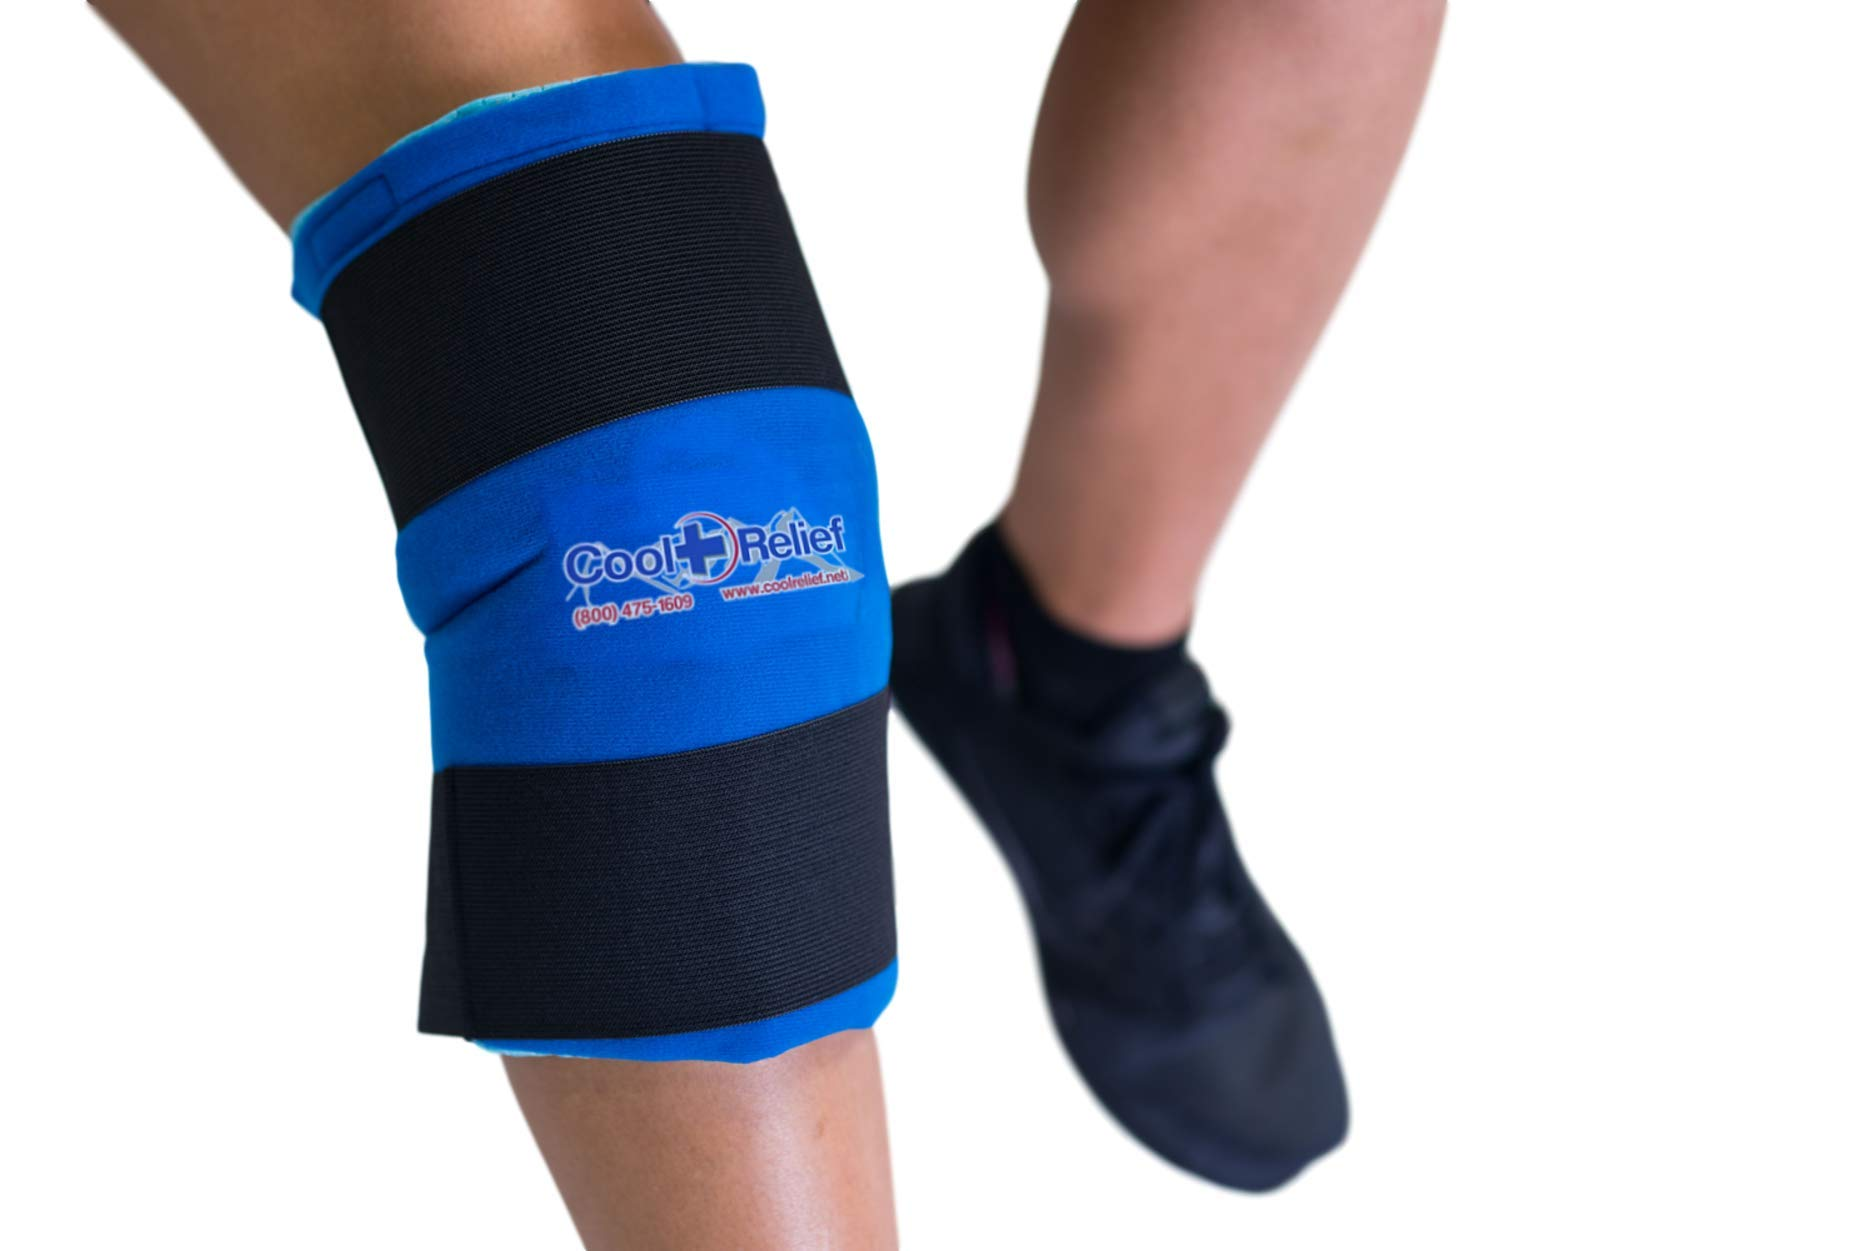 Cool Relief Reusable Cryotherapy Ice Pack for Knee Relief with Flexible Gel Inserts and Adjustable Compression Straps 11''x12'' Coverage Right or Left Knee